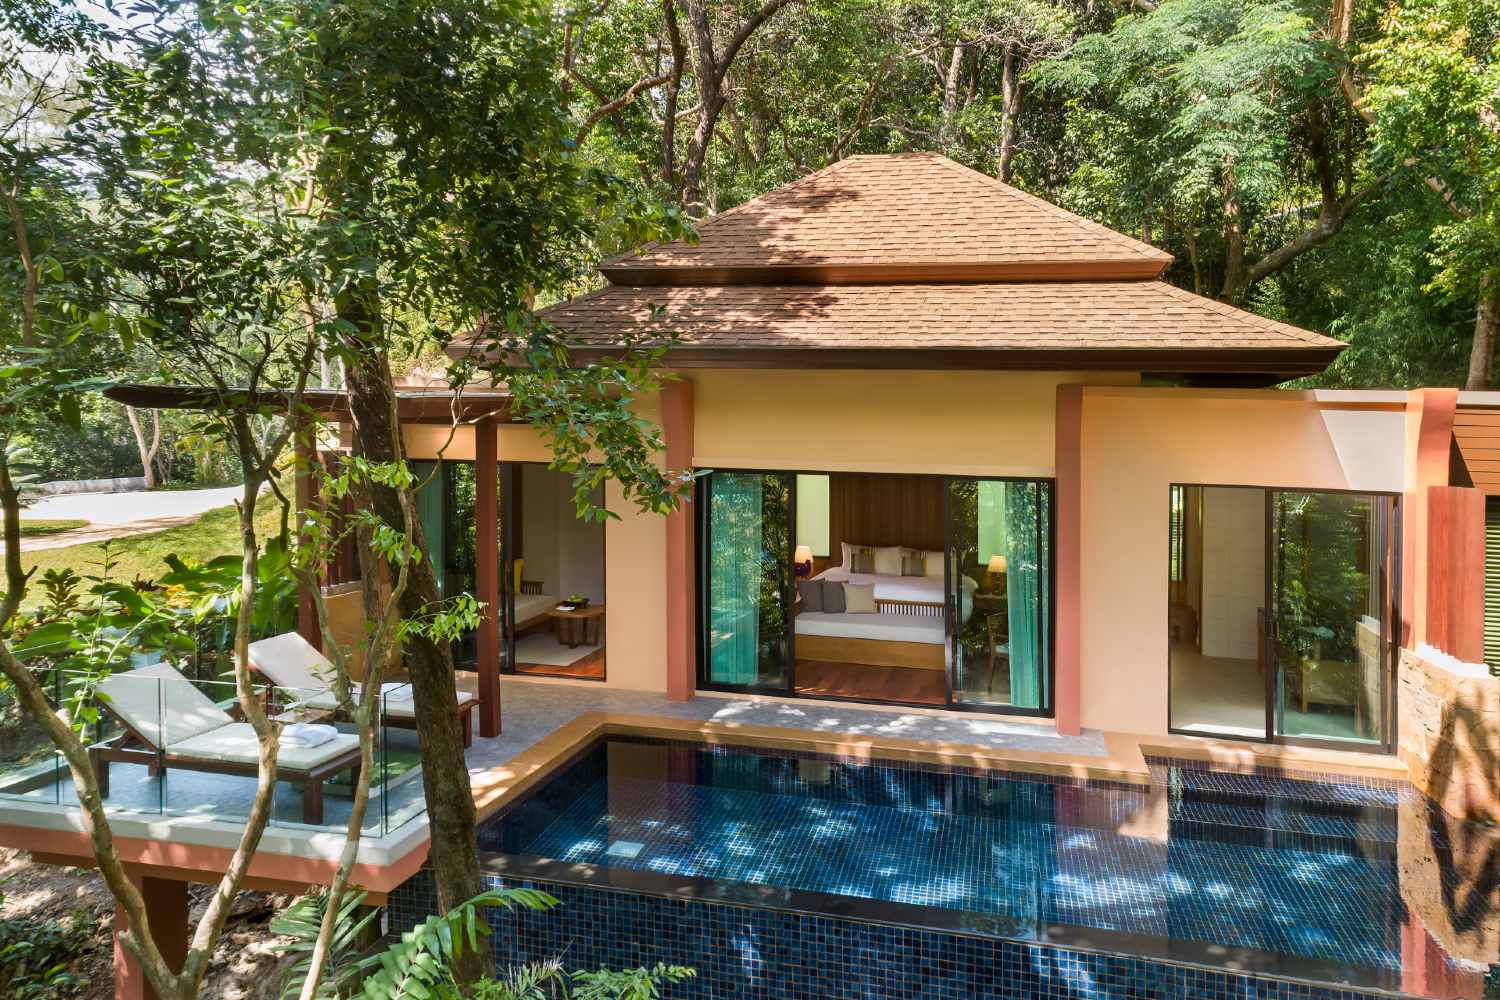 The Avani Two Bedroom Villa of the Avani Ao Nang Cliff Krabi Resort